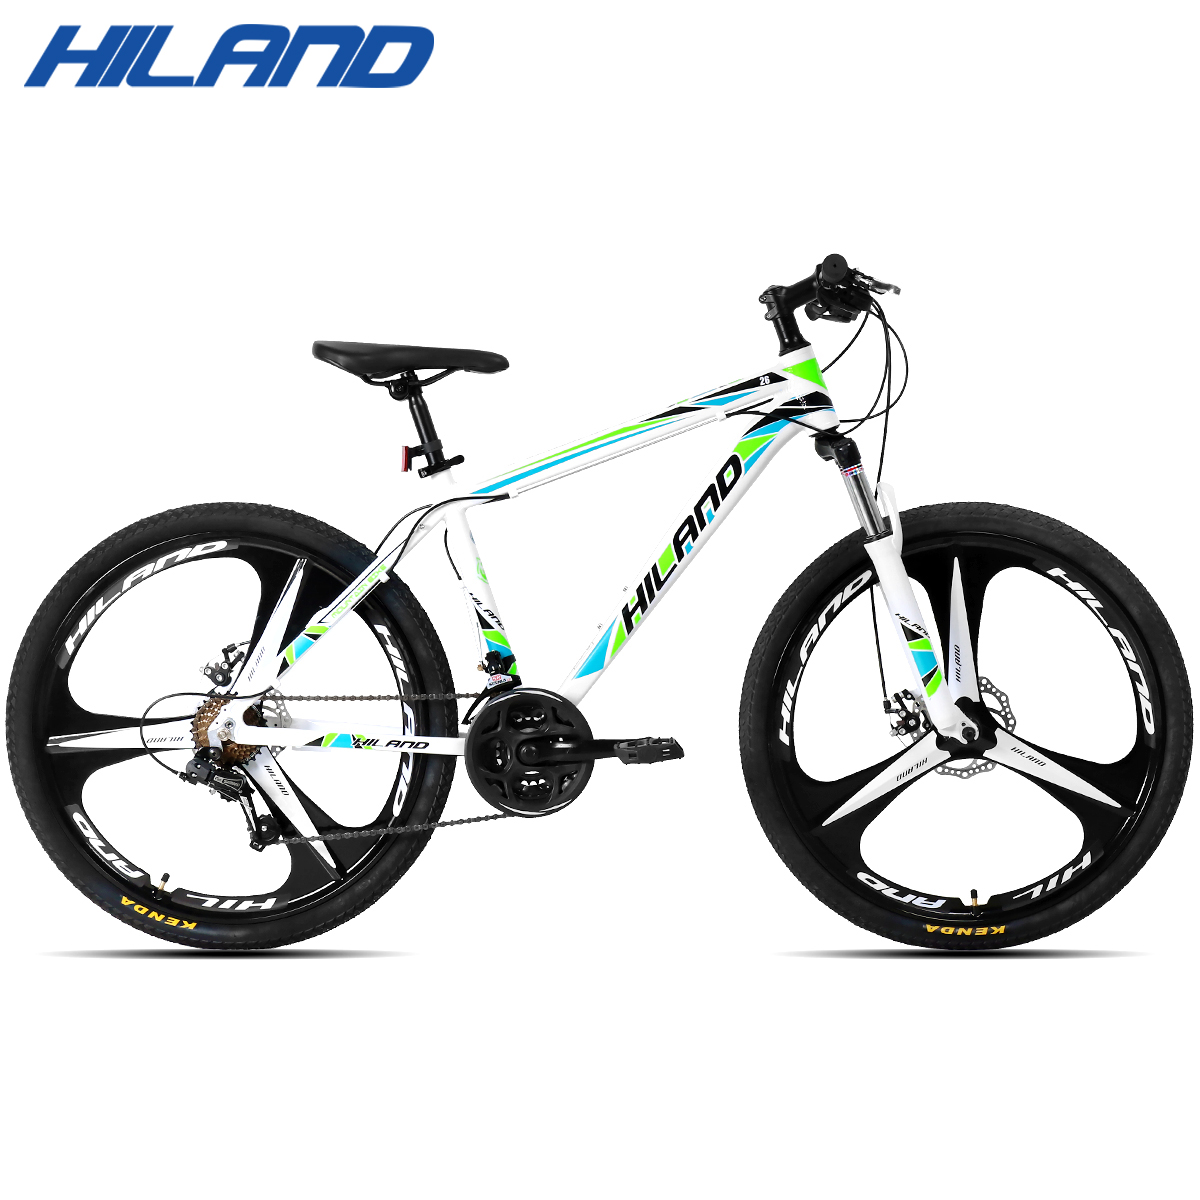 HILAND 21 Speed Aluminum Alloy Mountain Bike Adult Suspension Bicycle with Shimano Tourney and Microshift Shifter Free Shipping in Bicycle from Sports Entertainment